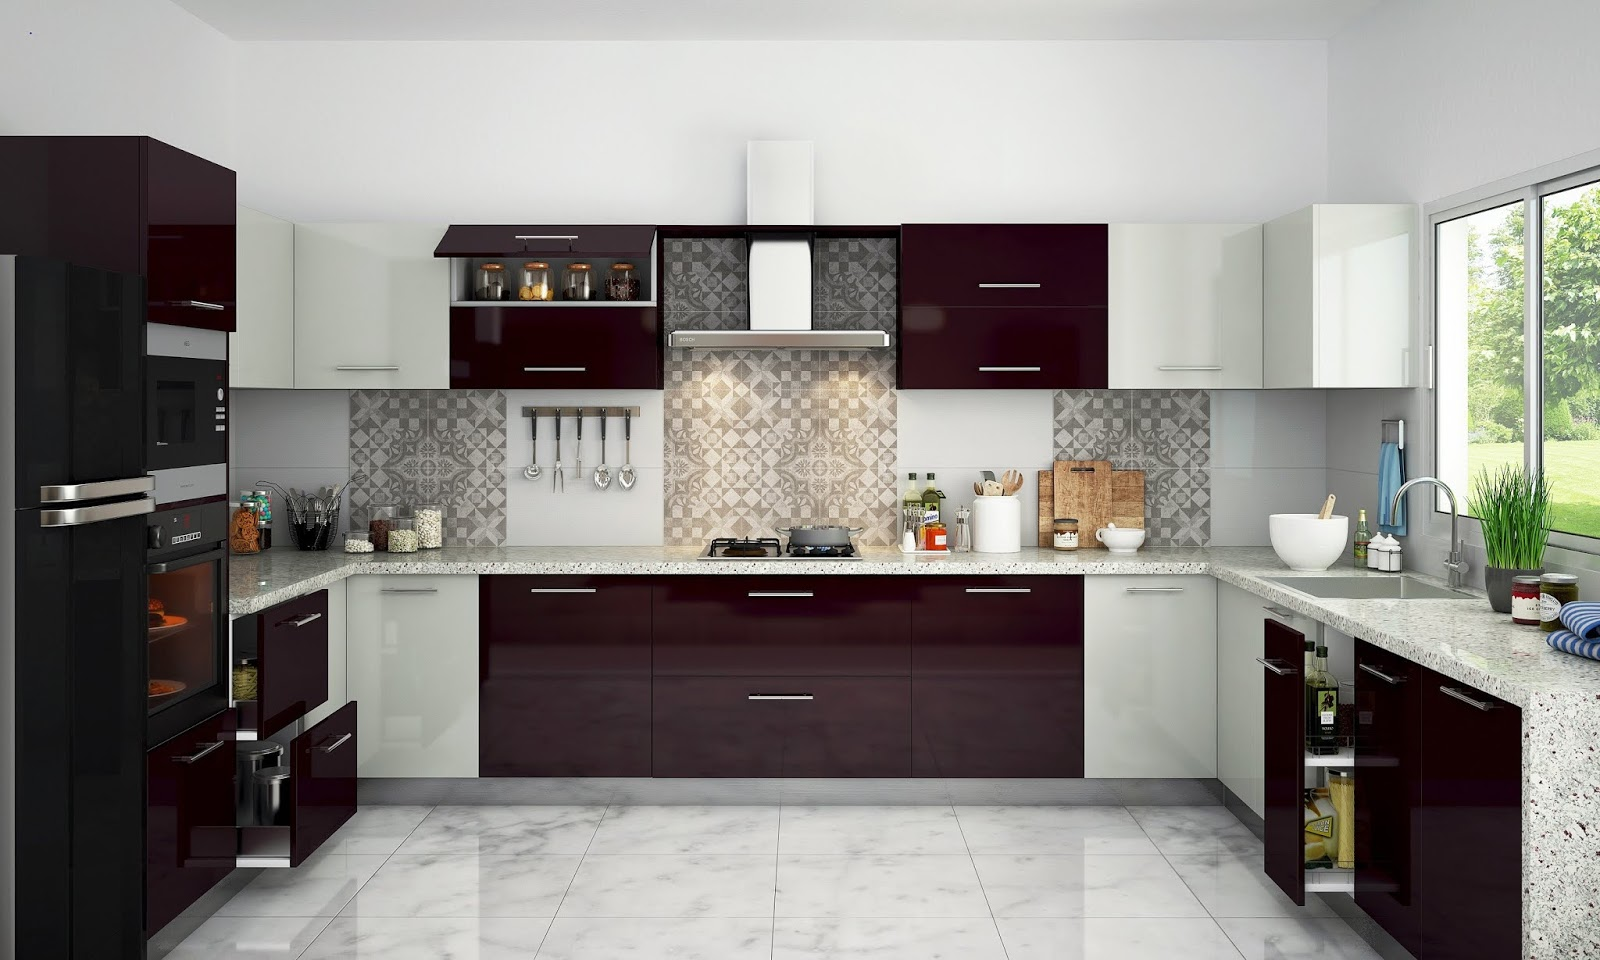 100 Modular Indian Kitchen Designs Ideas Colors Cabinets 2019